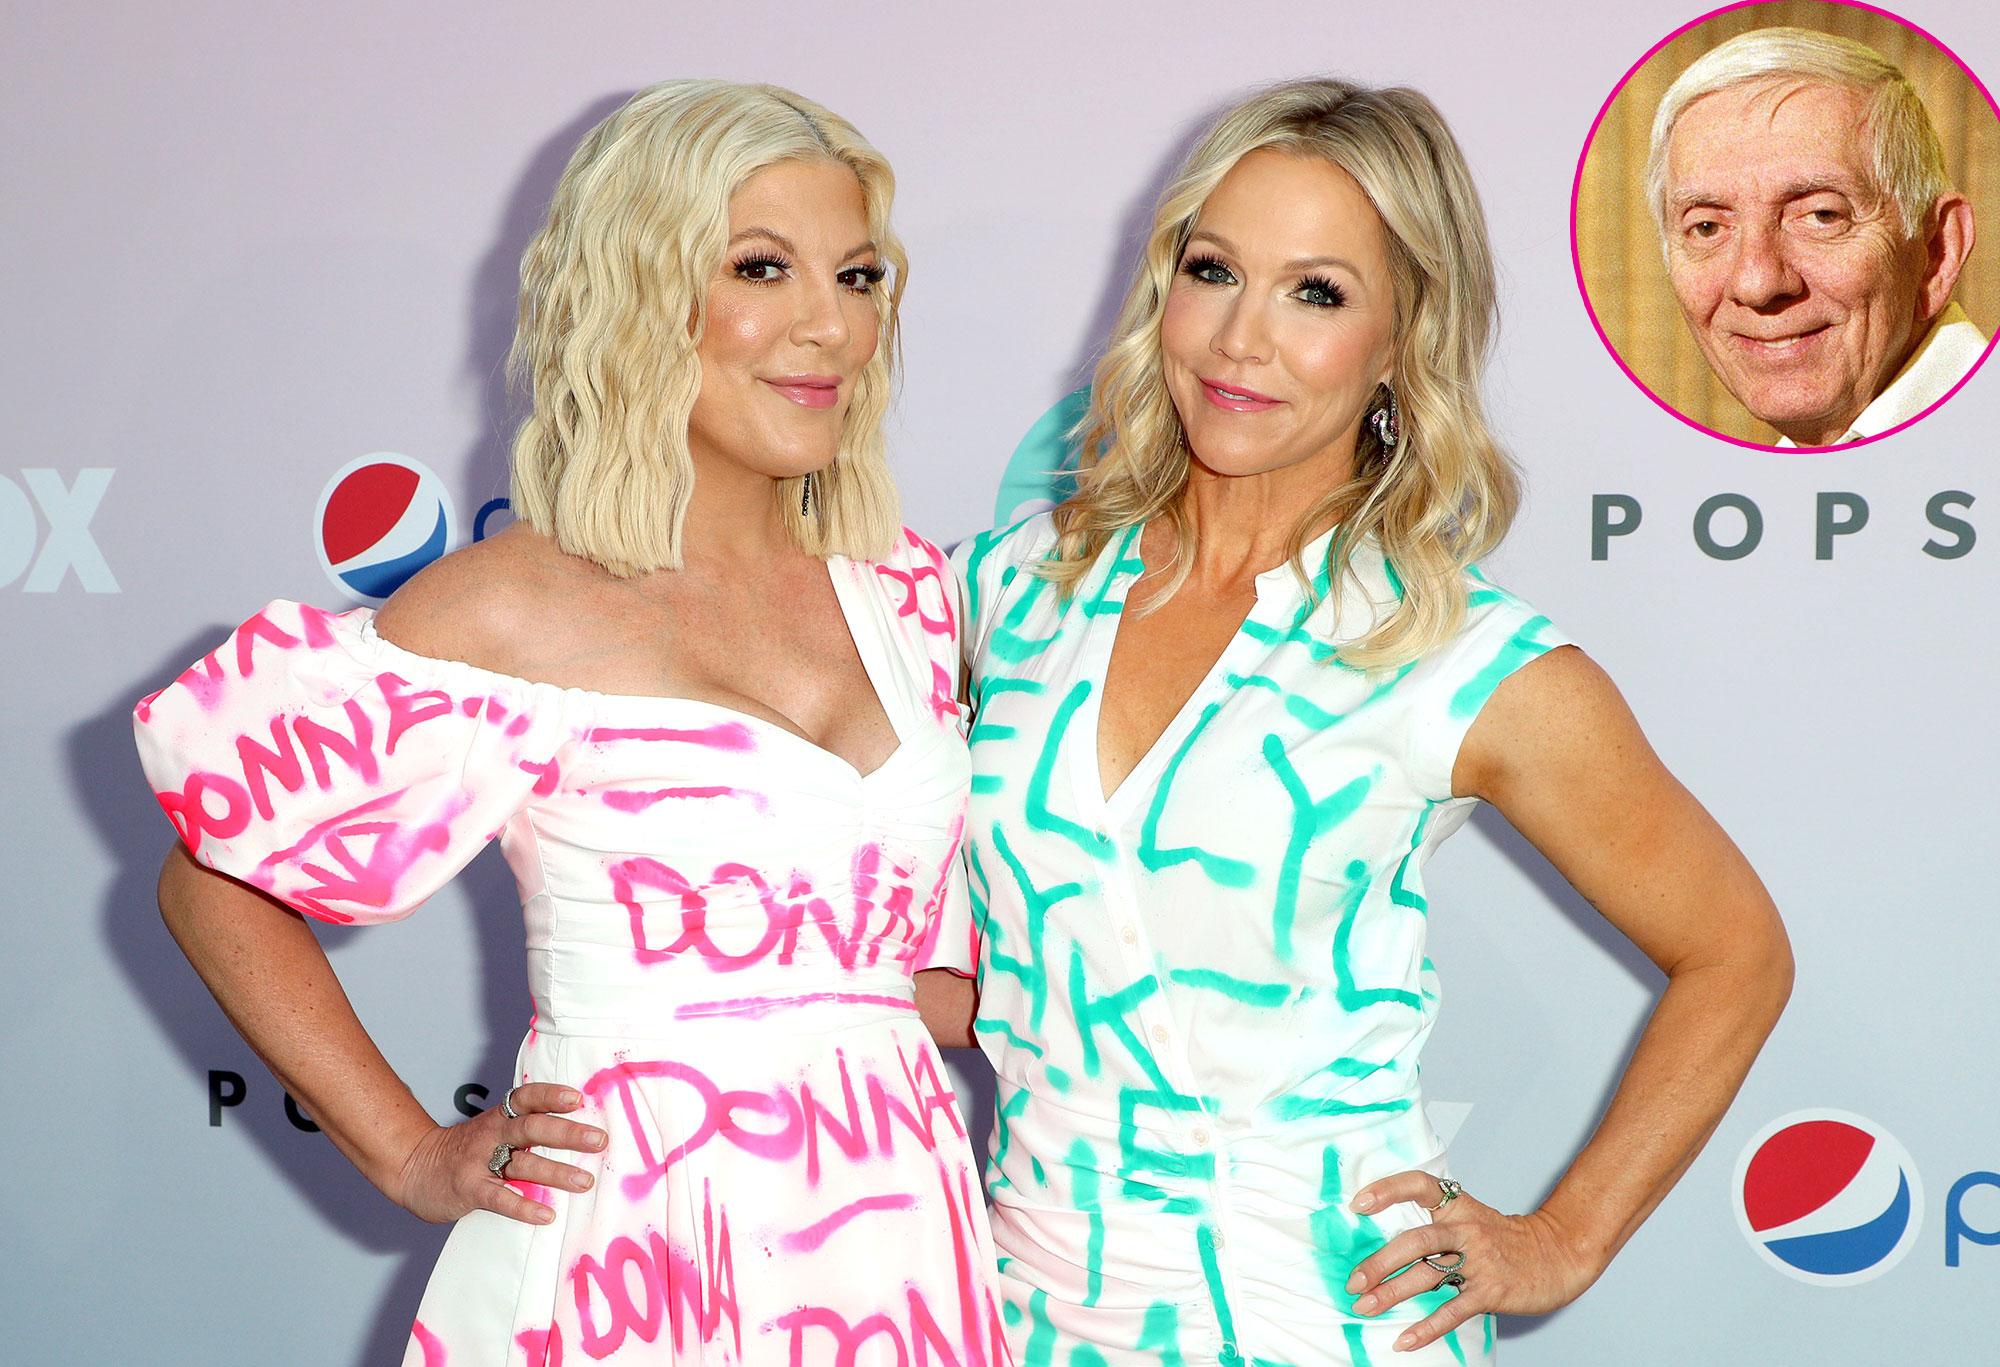 Tori Spelling and Jennie Garth Wearing Clothes With Donna and Kelly Written on Them Say Aaron Spelling Would Be Proud BH90210 - Tori Spelling, Jennie Garth and Aaron Spelling.